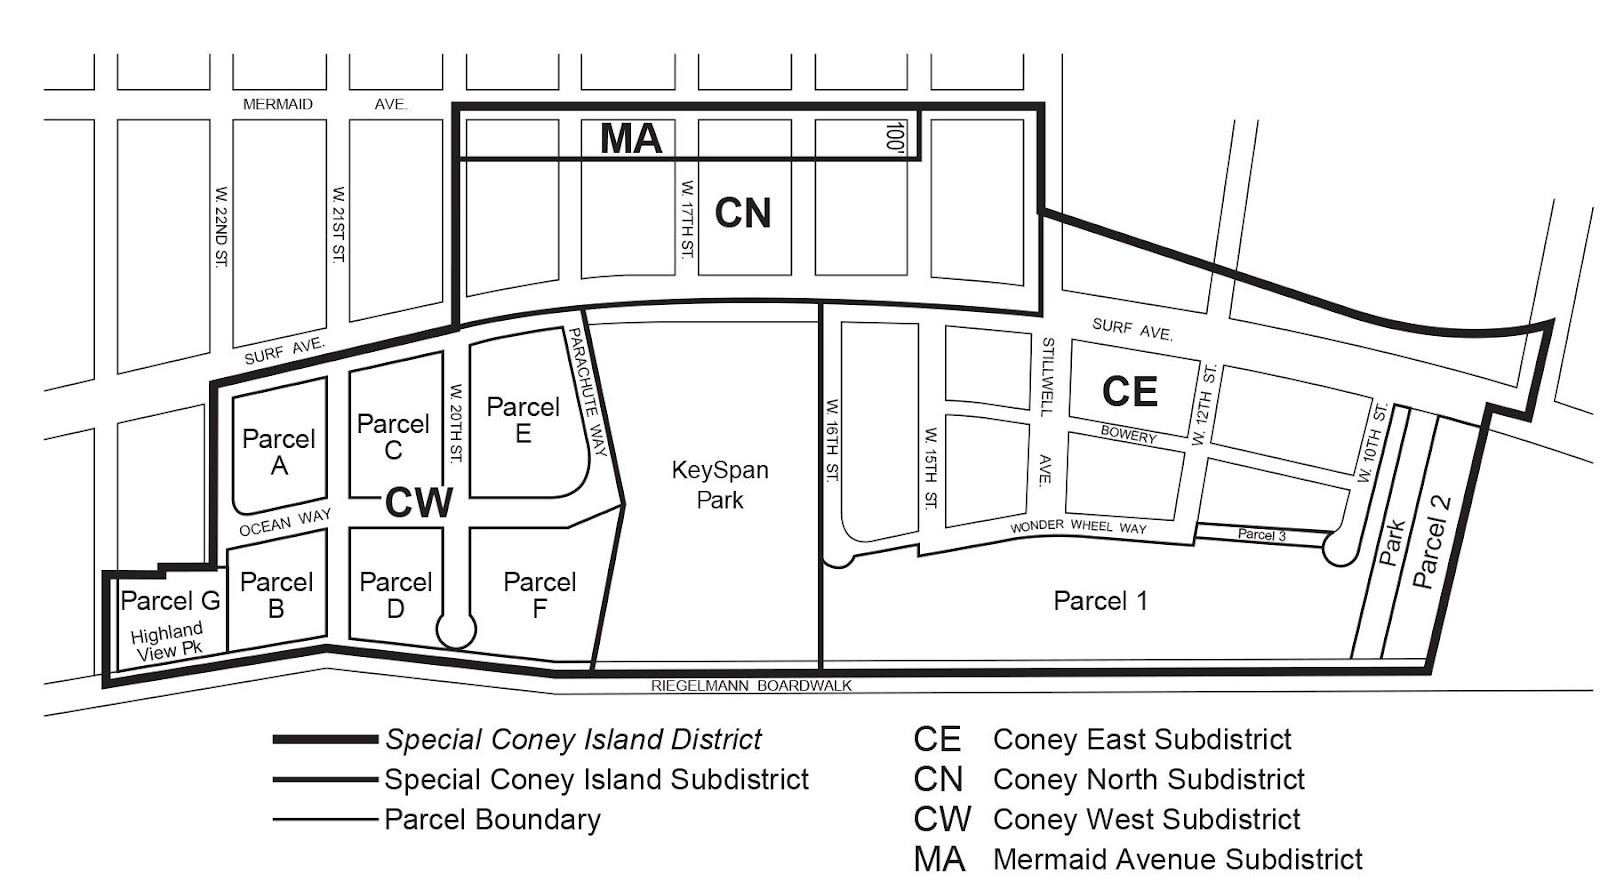 Zoning Resolutions Chapter 1: Special Coney Island District Appendix A.0